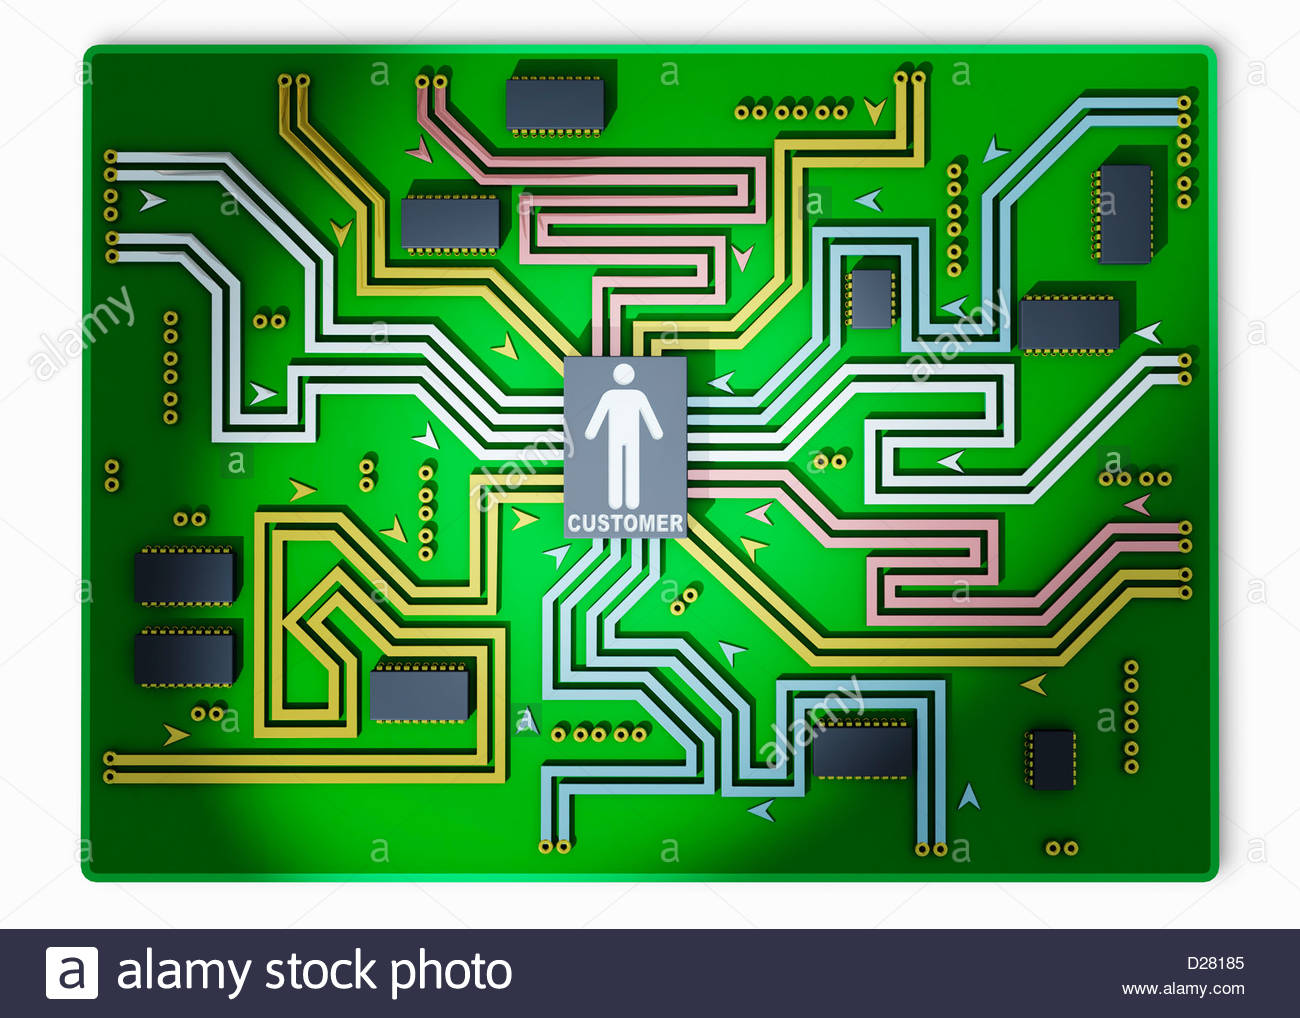 Customer at center of circuit board - Stock Image